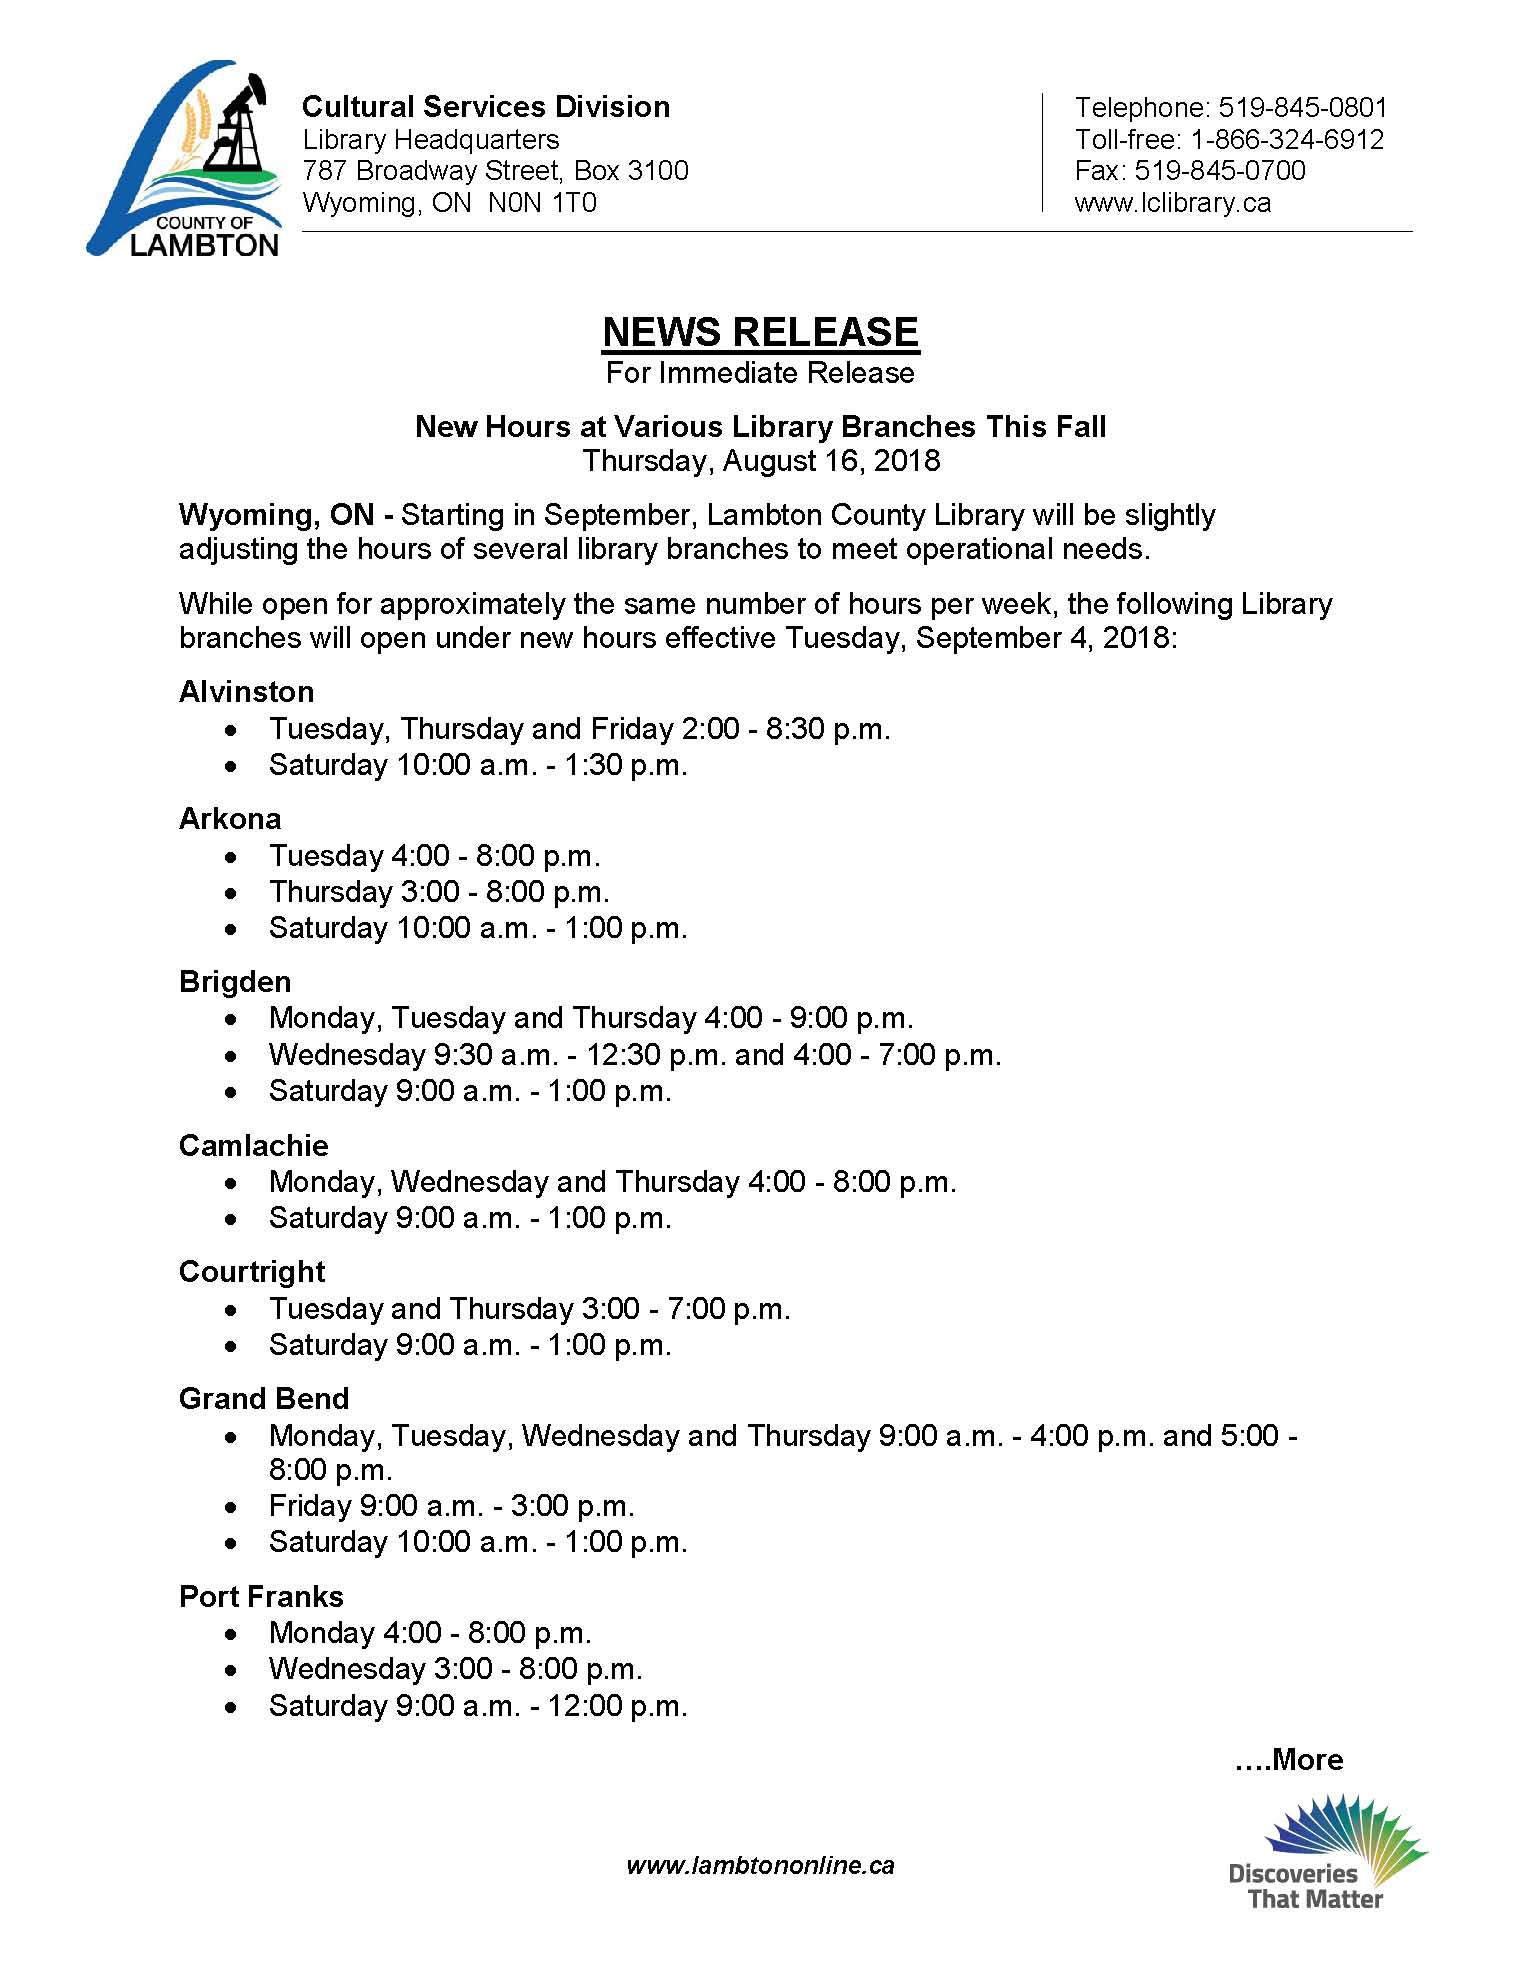 New Hours at Various Library Branches This Fall